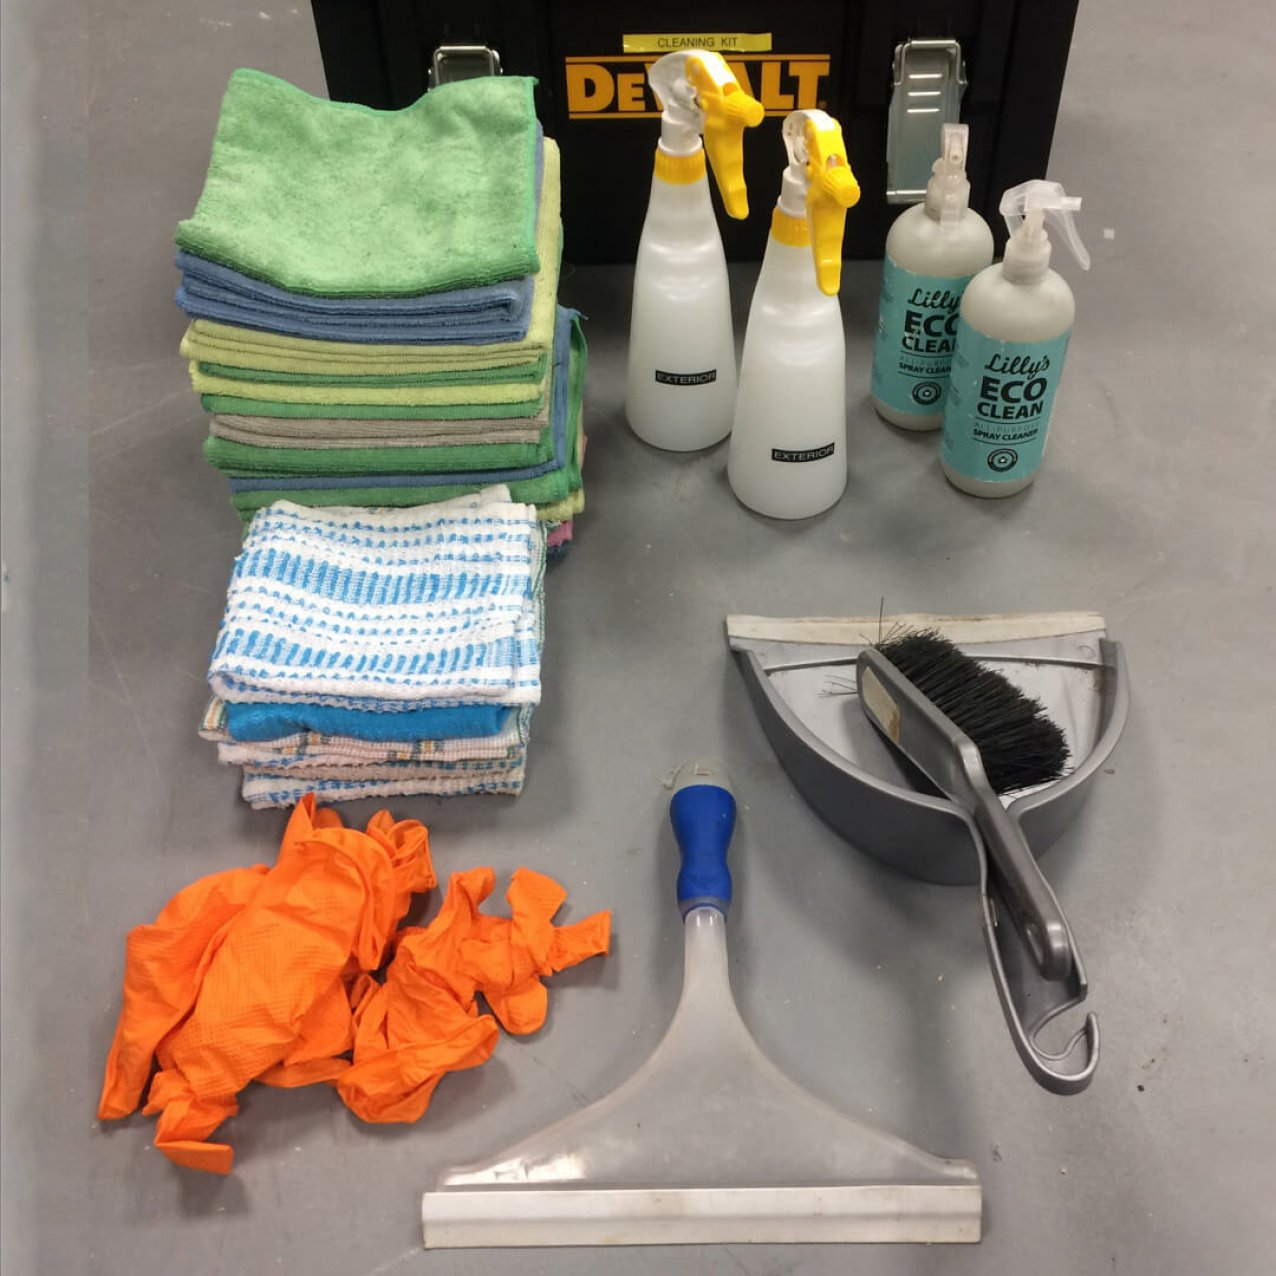 Cleaning kit onboard Vagabond Tours of Ireland vehicle